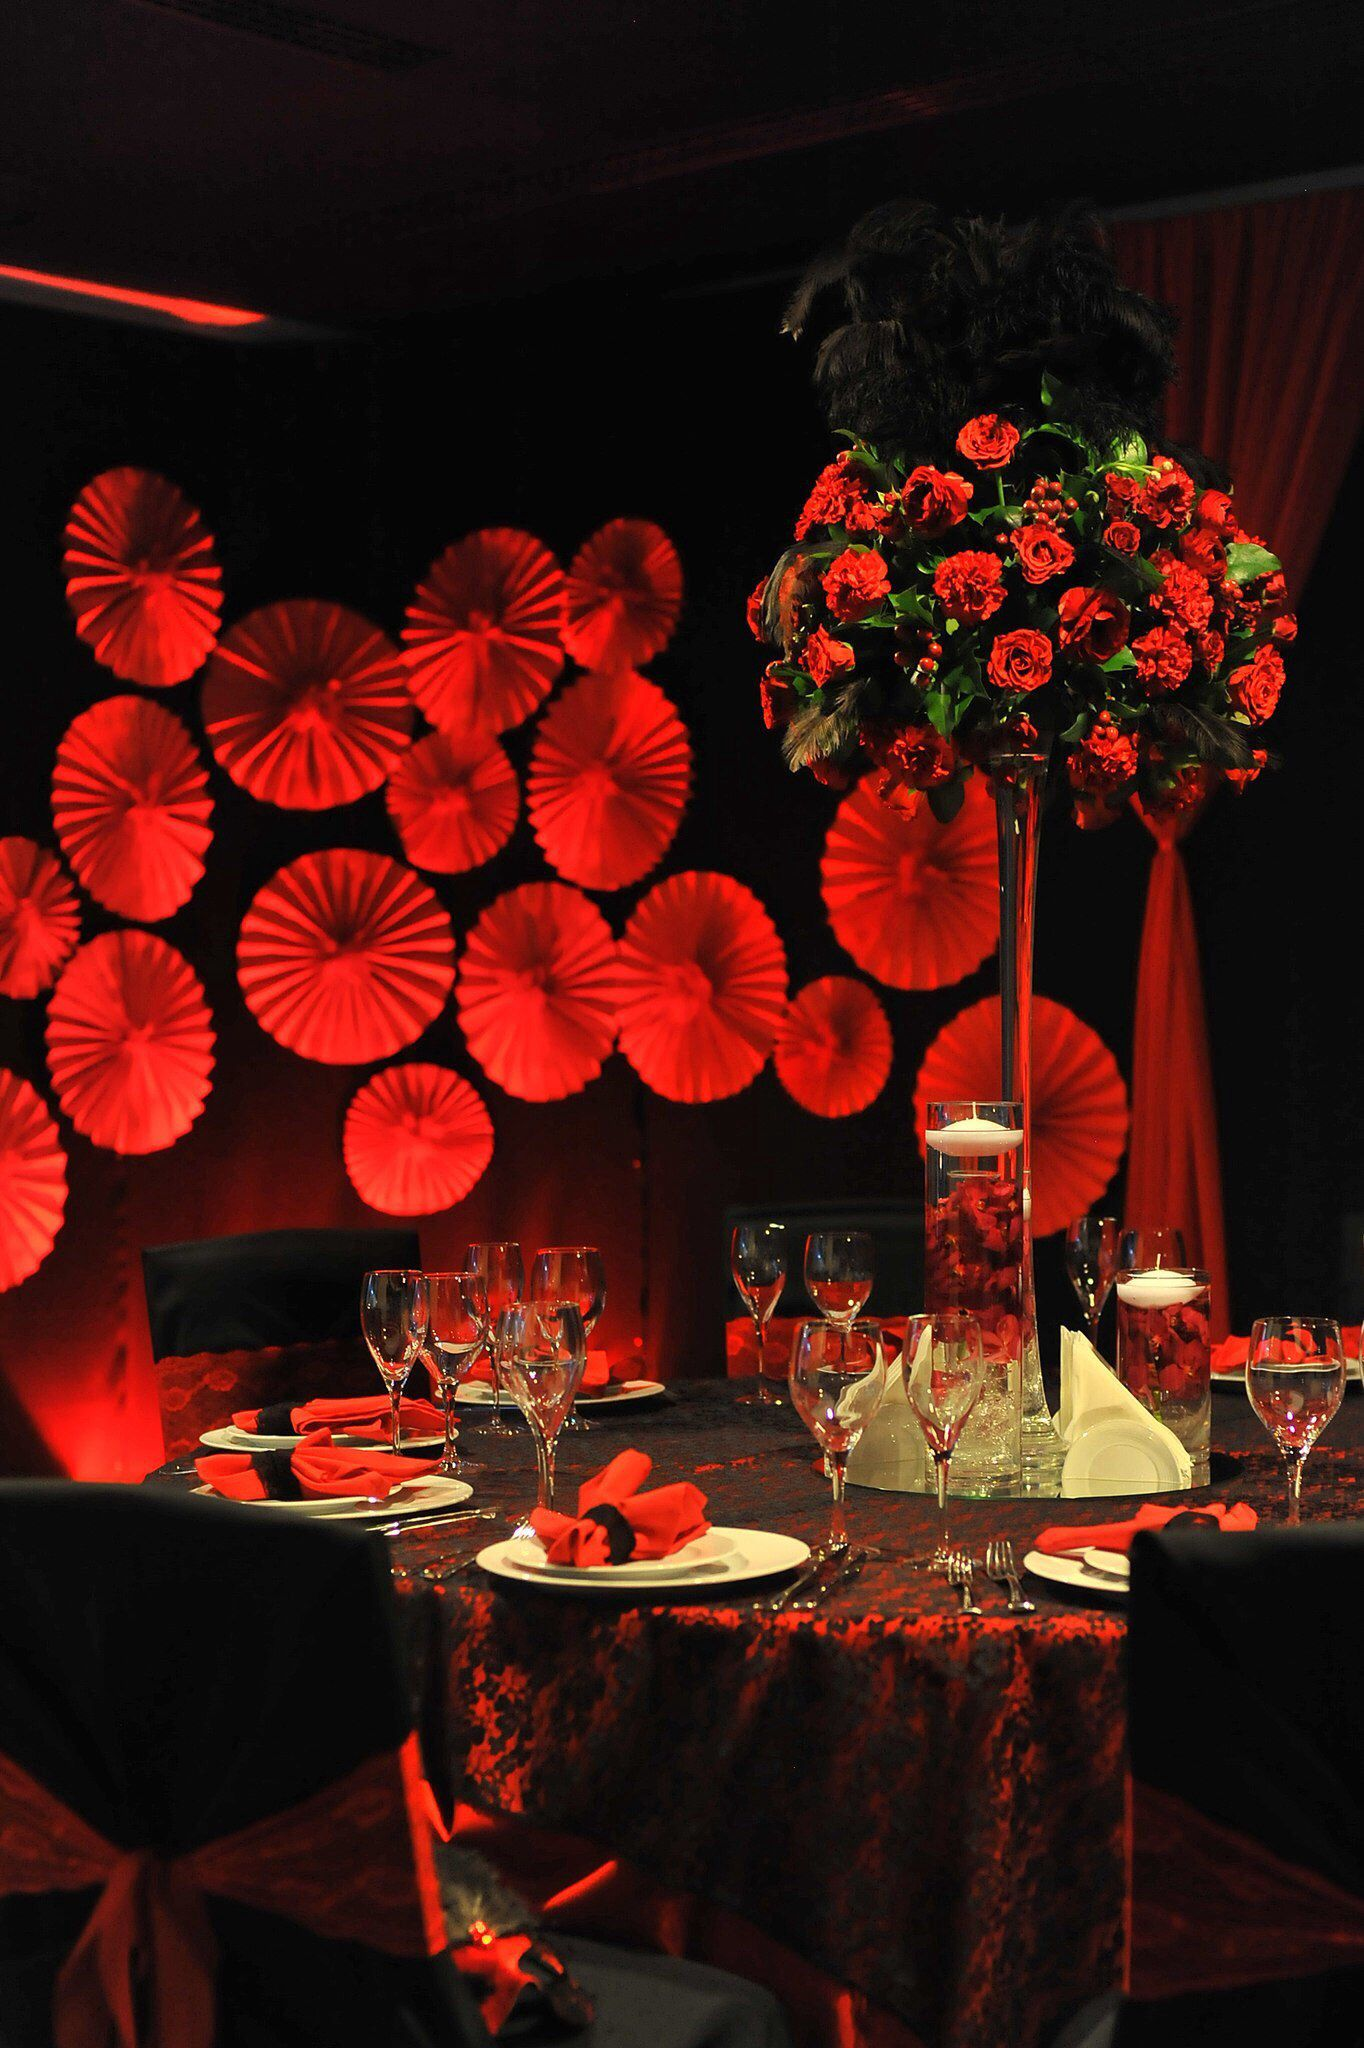 Moulin rouge bridal party   Birthday party   Pinterest   Moulin ...